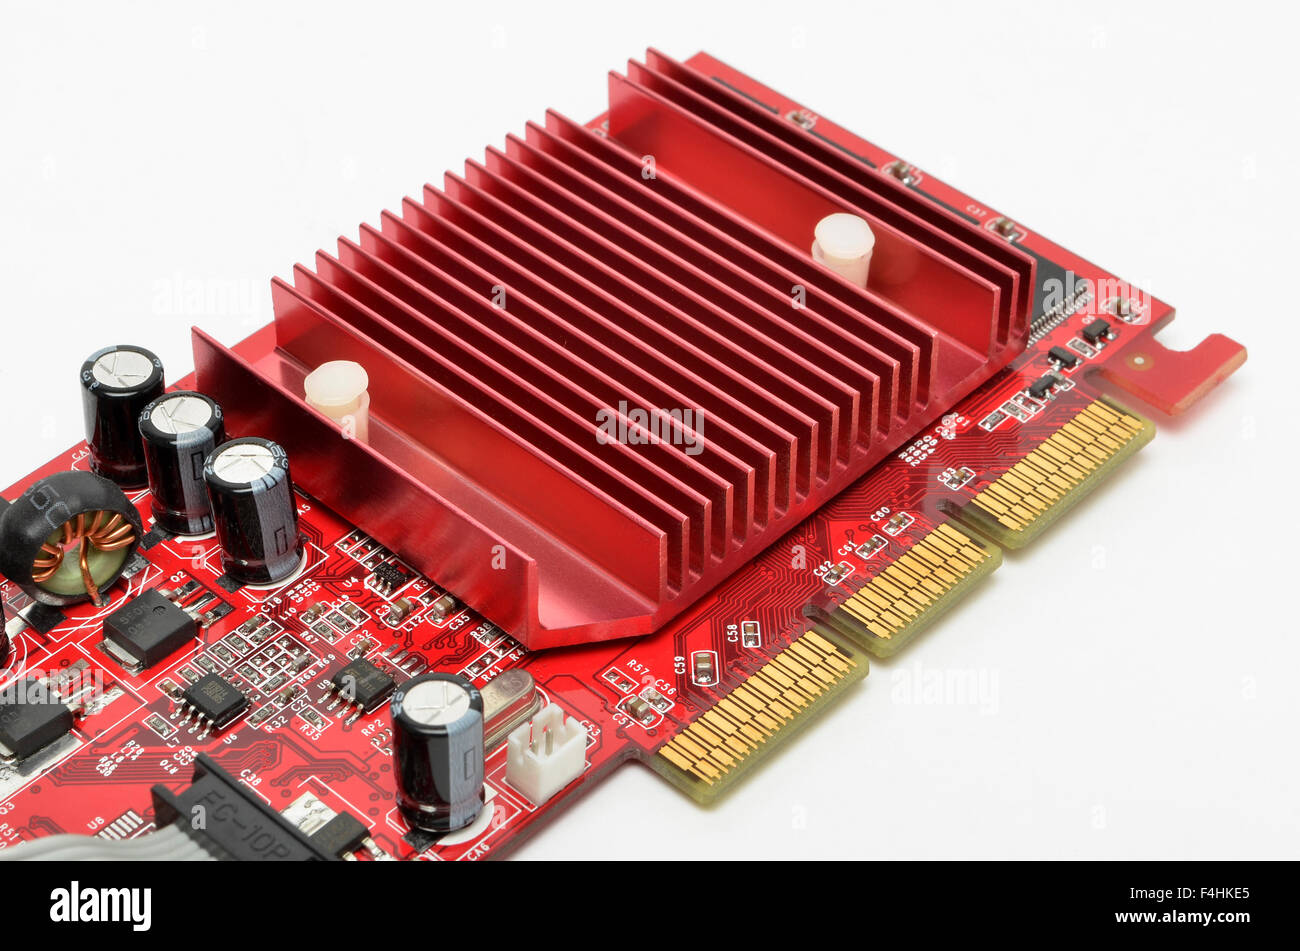 Gainward graphics card heat sink and AGP contacts. - Stock Image